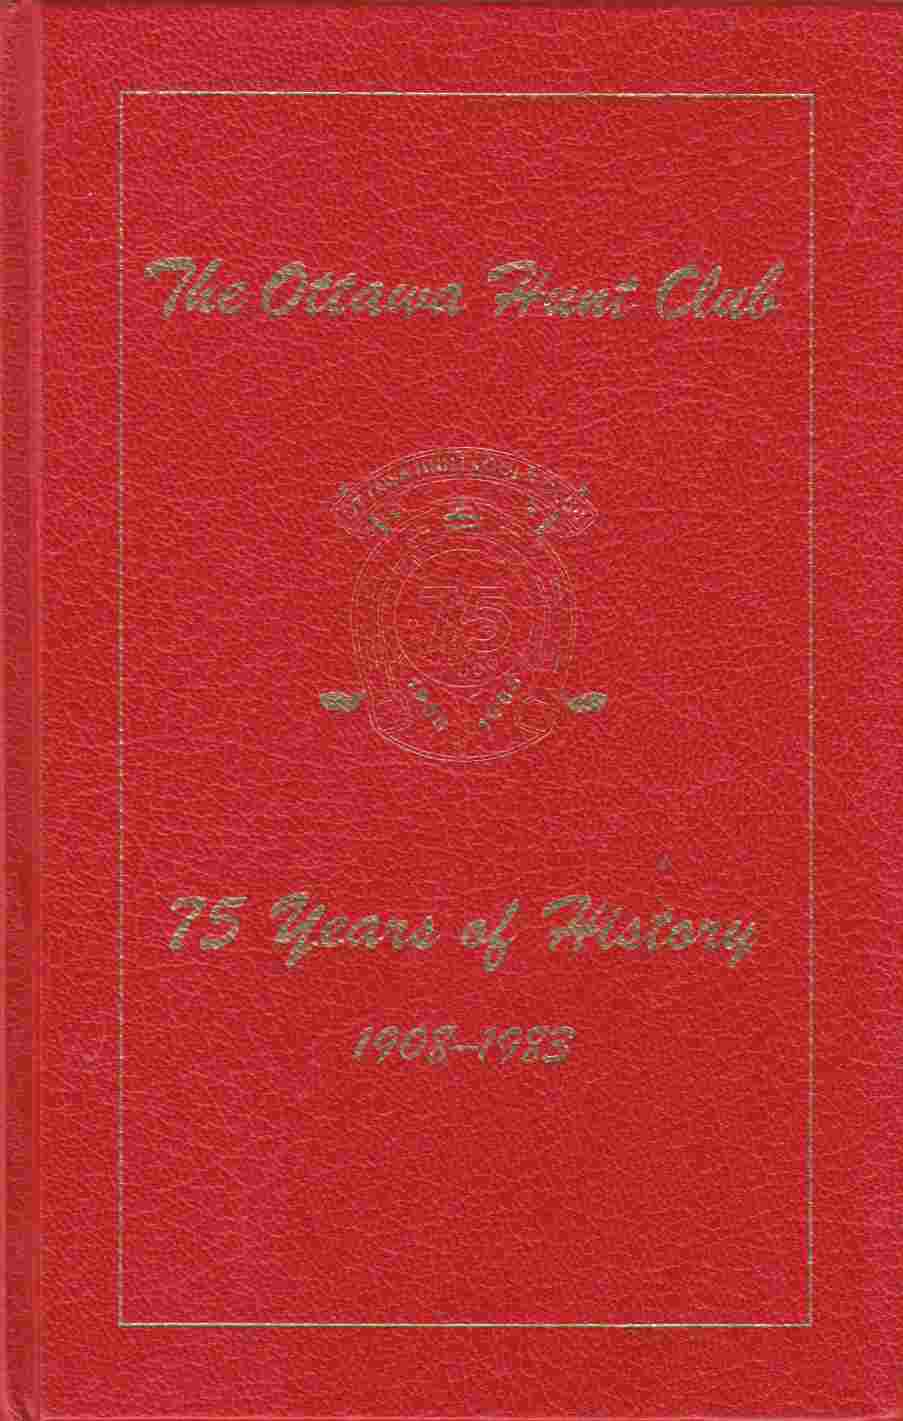 Image for The Ottawa Hunt Club 75 Years of History 1908 - 1983